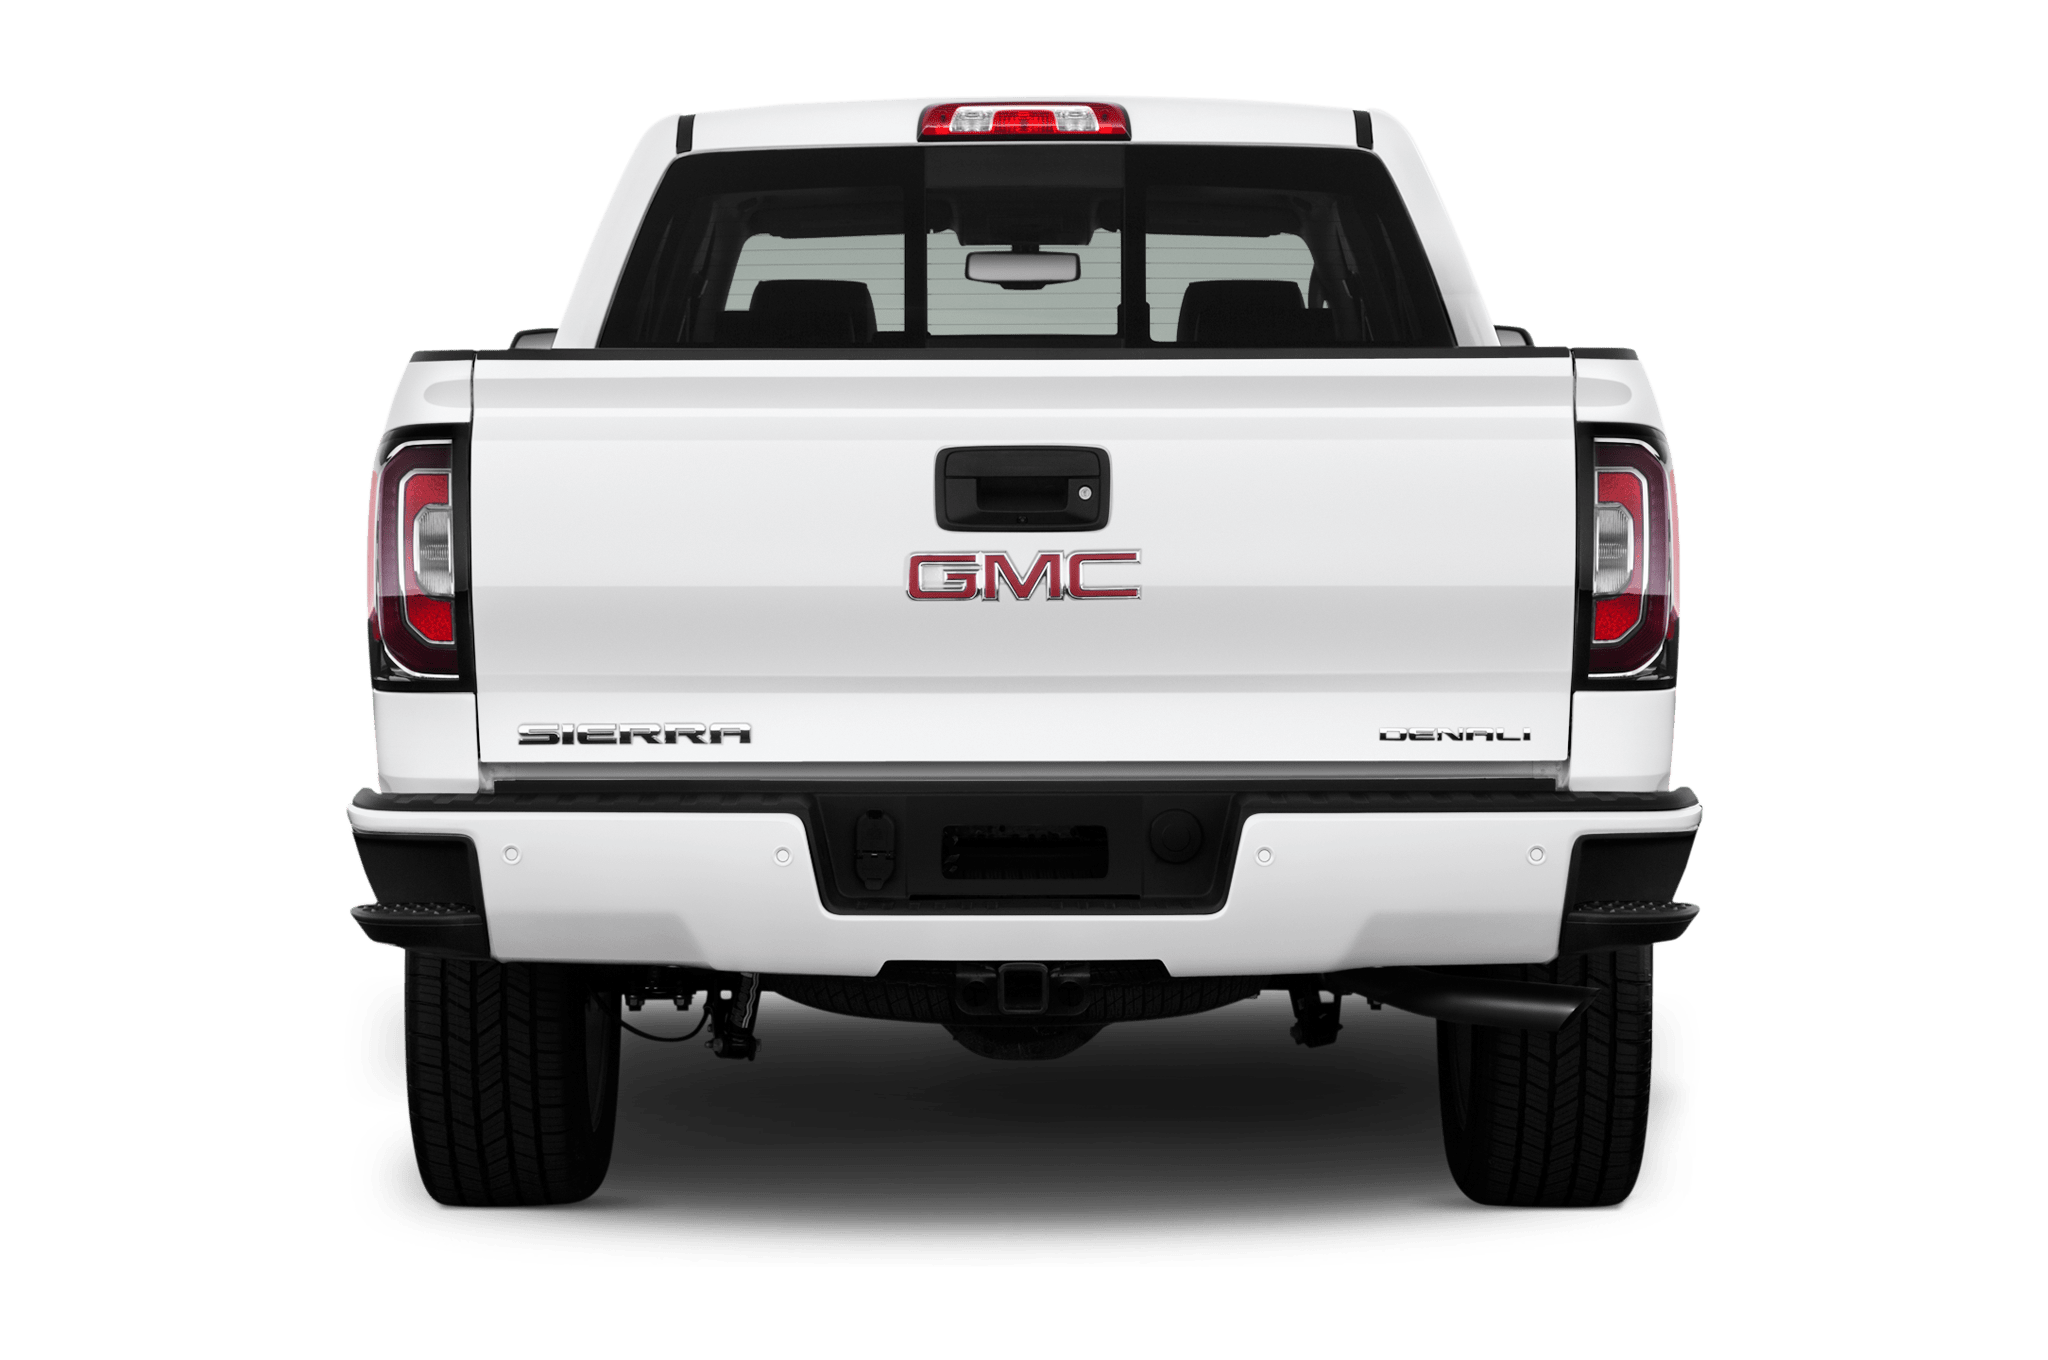 Types of Warranties When Purchasing The GMC Rear and Sierra Front Bumper